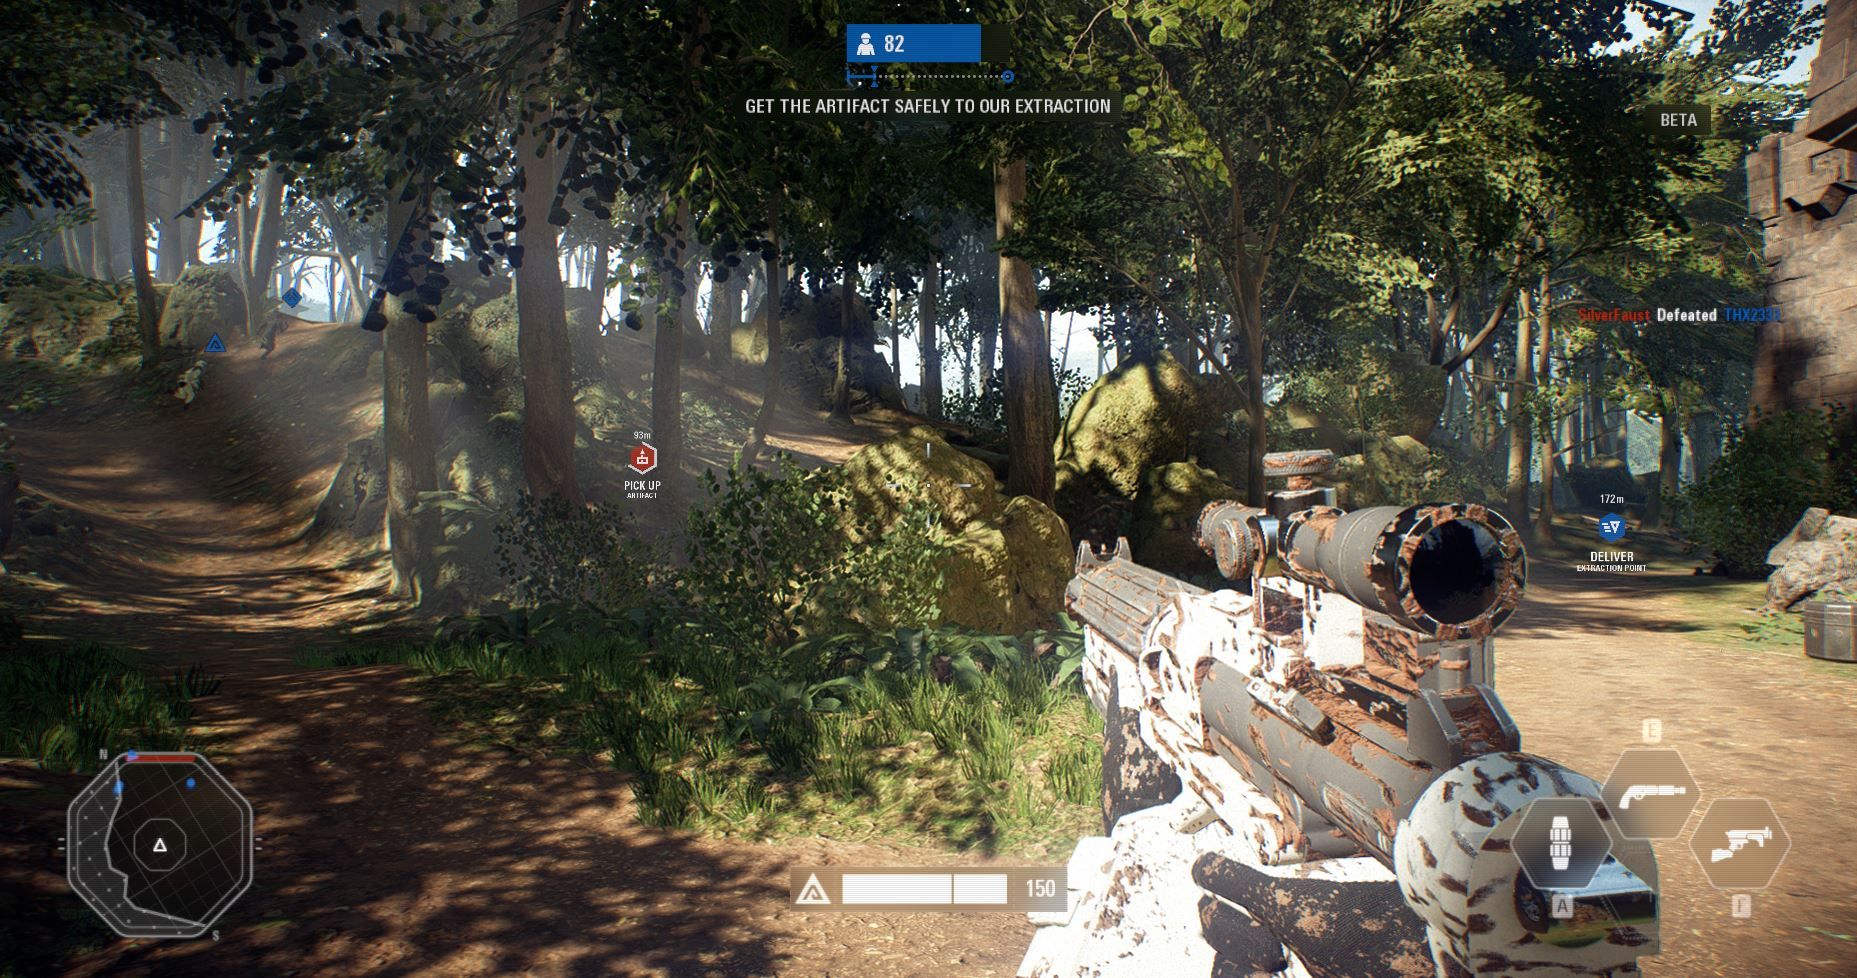 star wars battlefront 2 beta strike mode